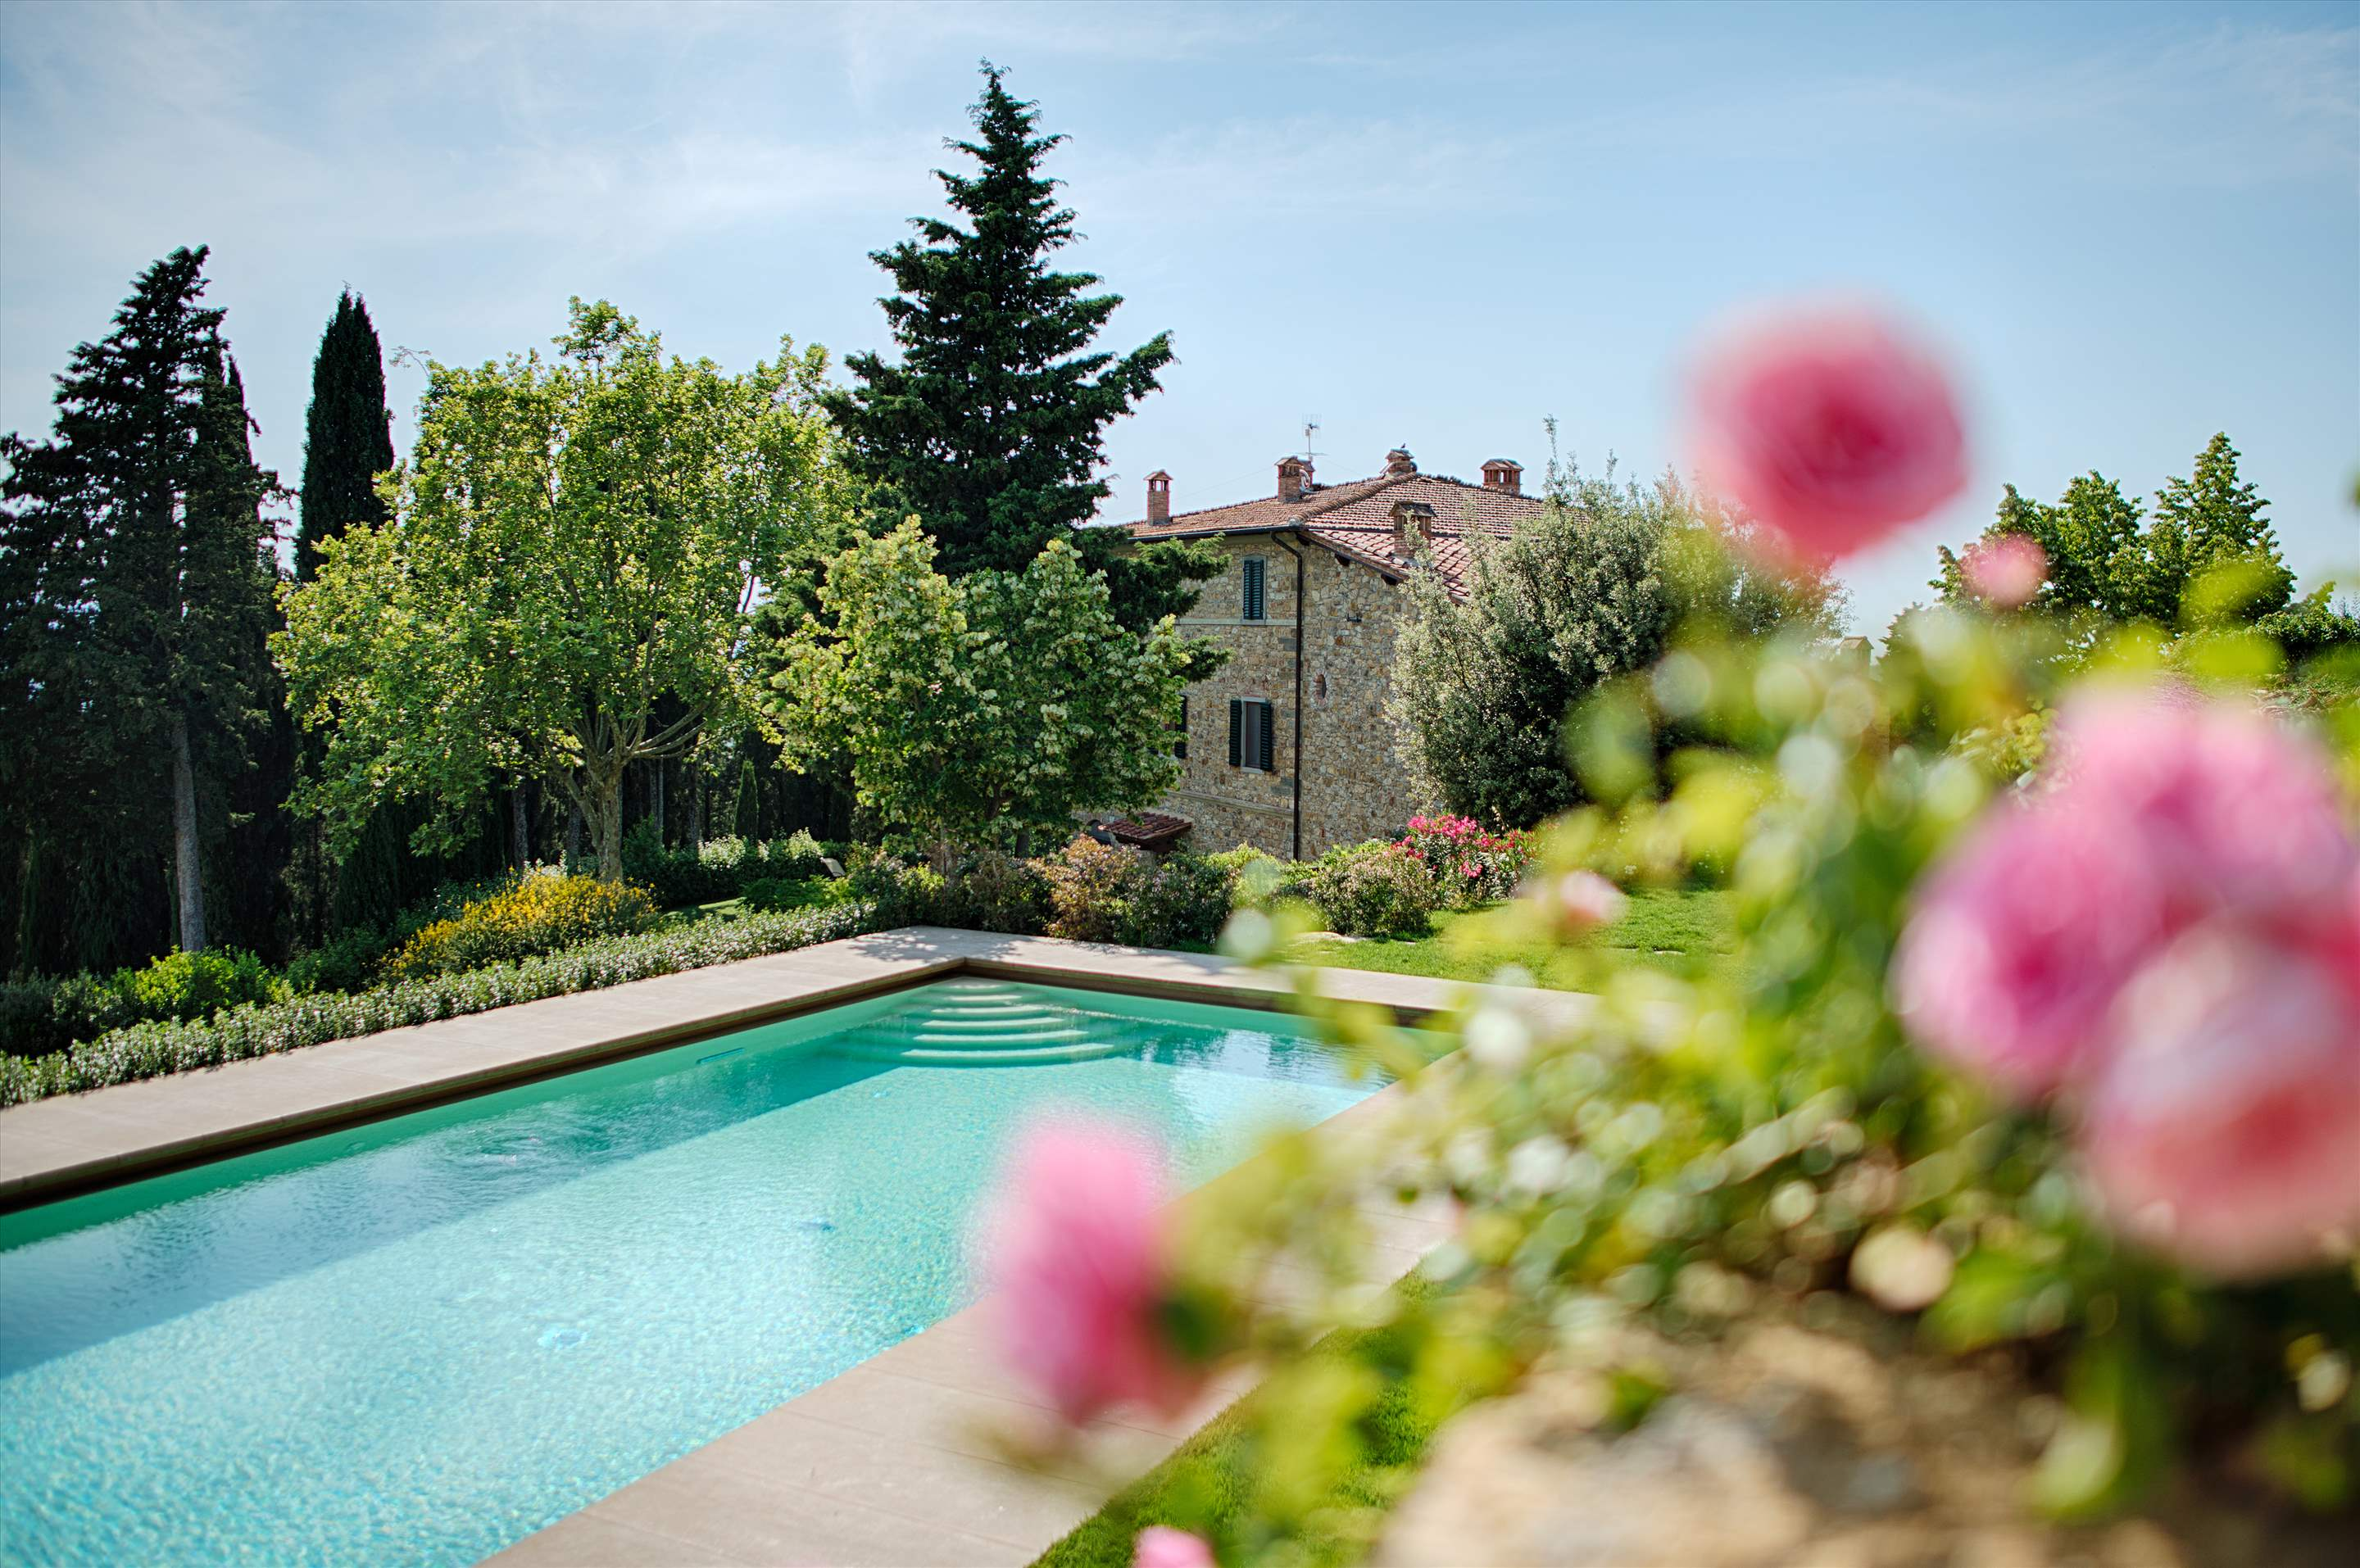 Villa La Valetta, Apt Rosa + 2 Bedrooms, 3 bedroom villa in Chianti & Countryside, Tuscany Photo #16